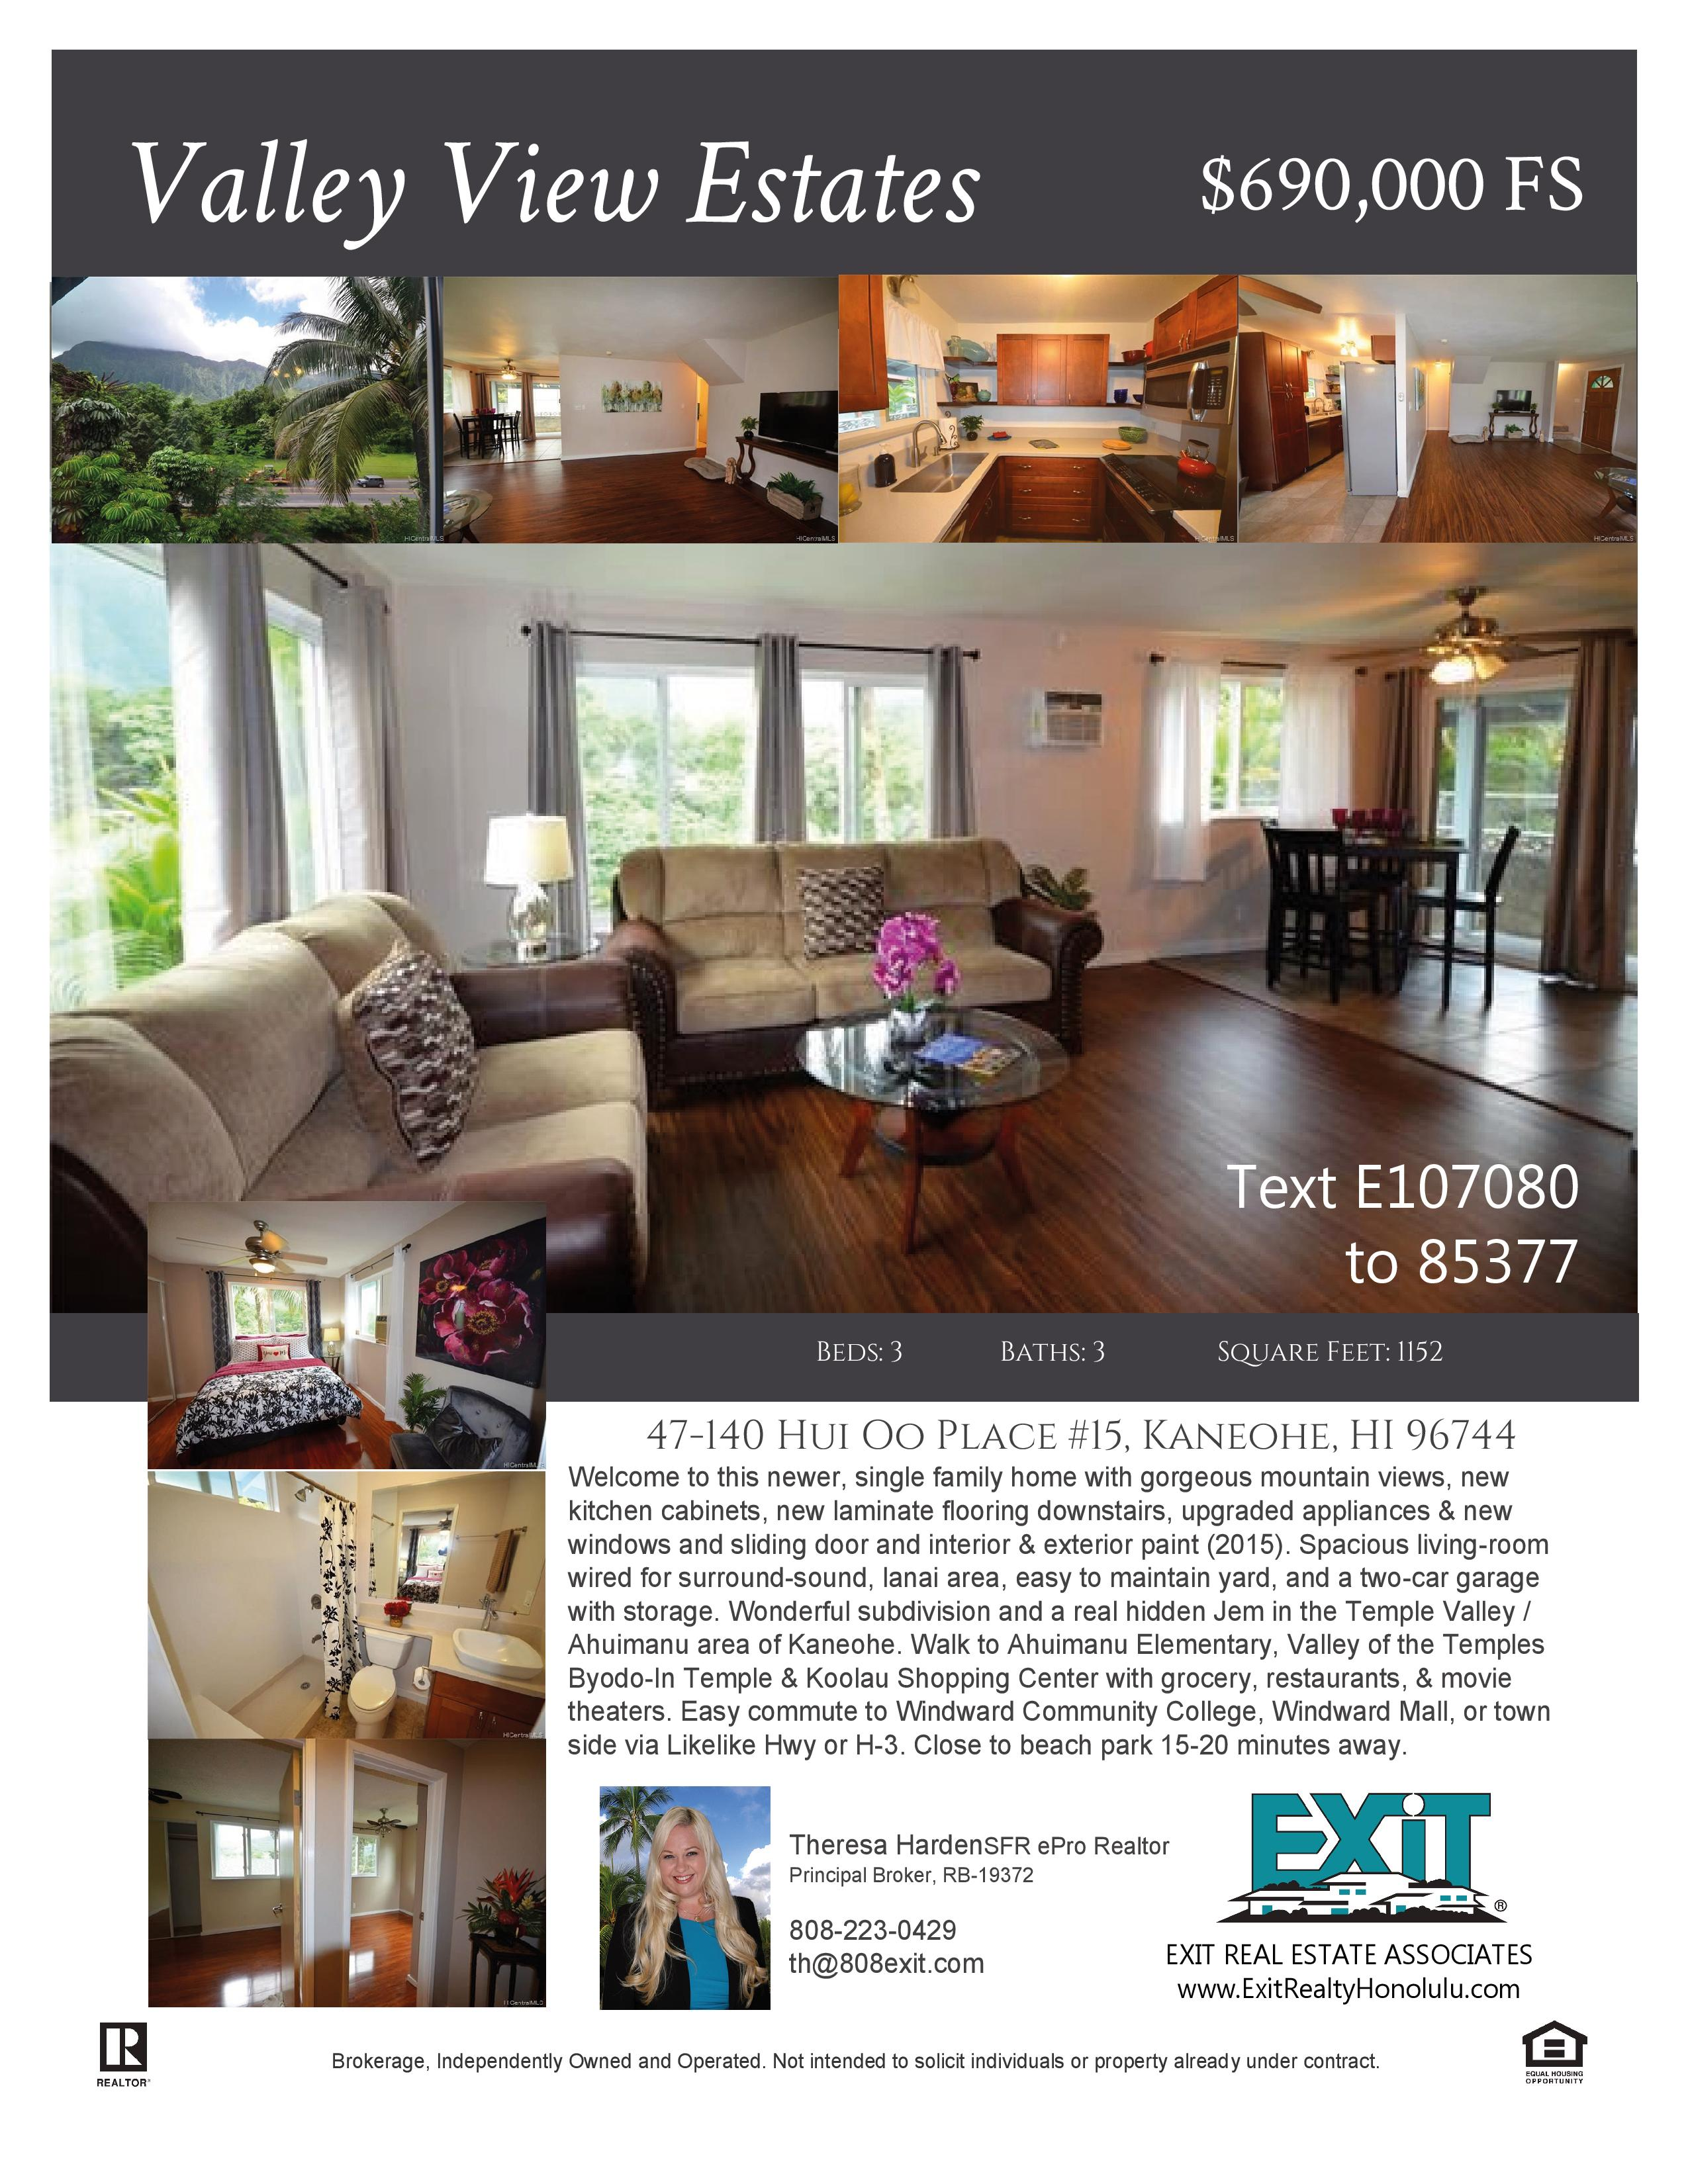 Kaneohe Valley View Estates Home For Sale 690 000 Fs